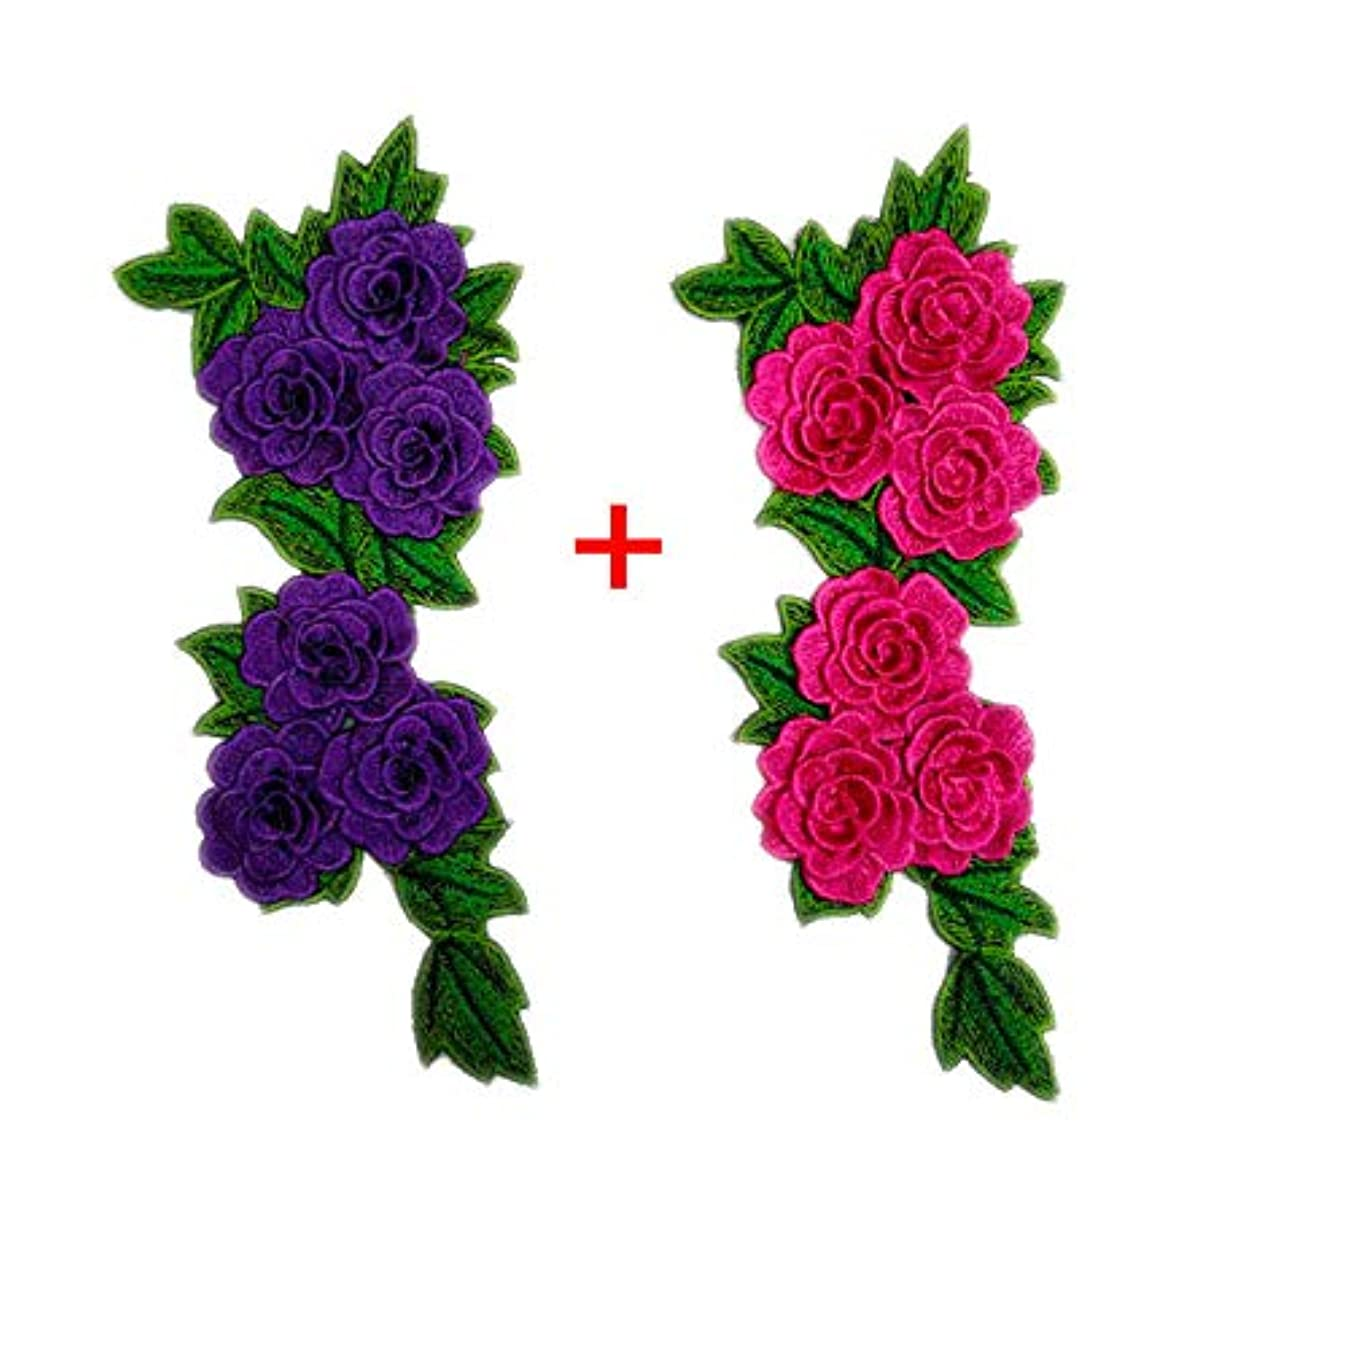 2 Pcs Roses Applique Embroidered Sewing On Patch Flower Patch Stickers for Clothes Badge Sewing Fabric Bag Jeans Applique Supplies (Purple+Pink)